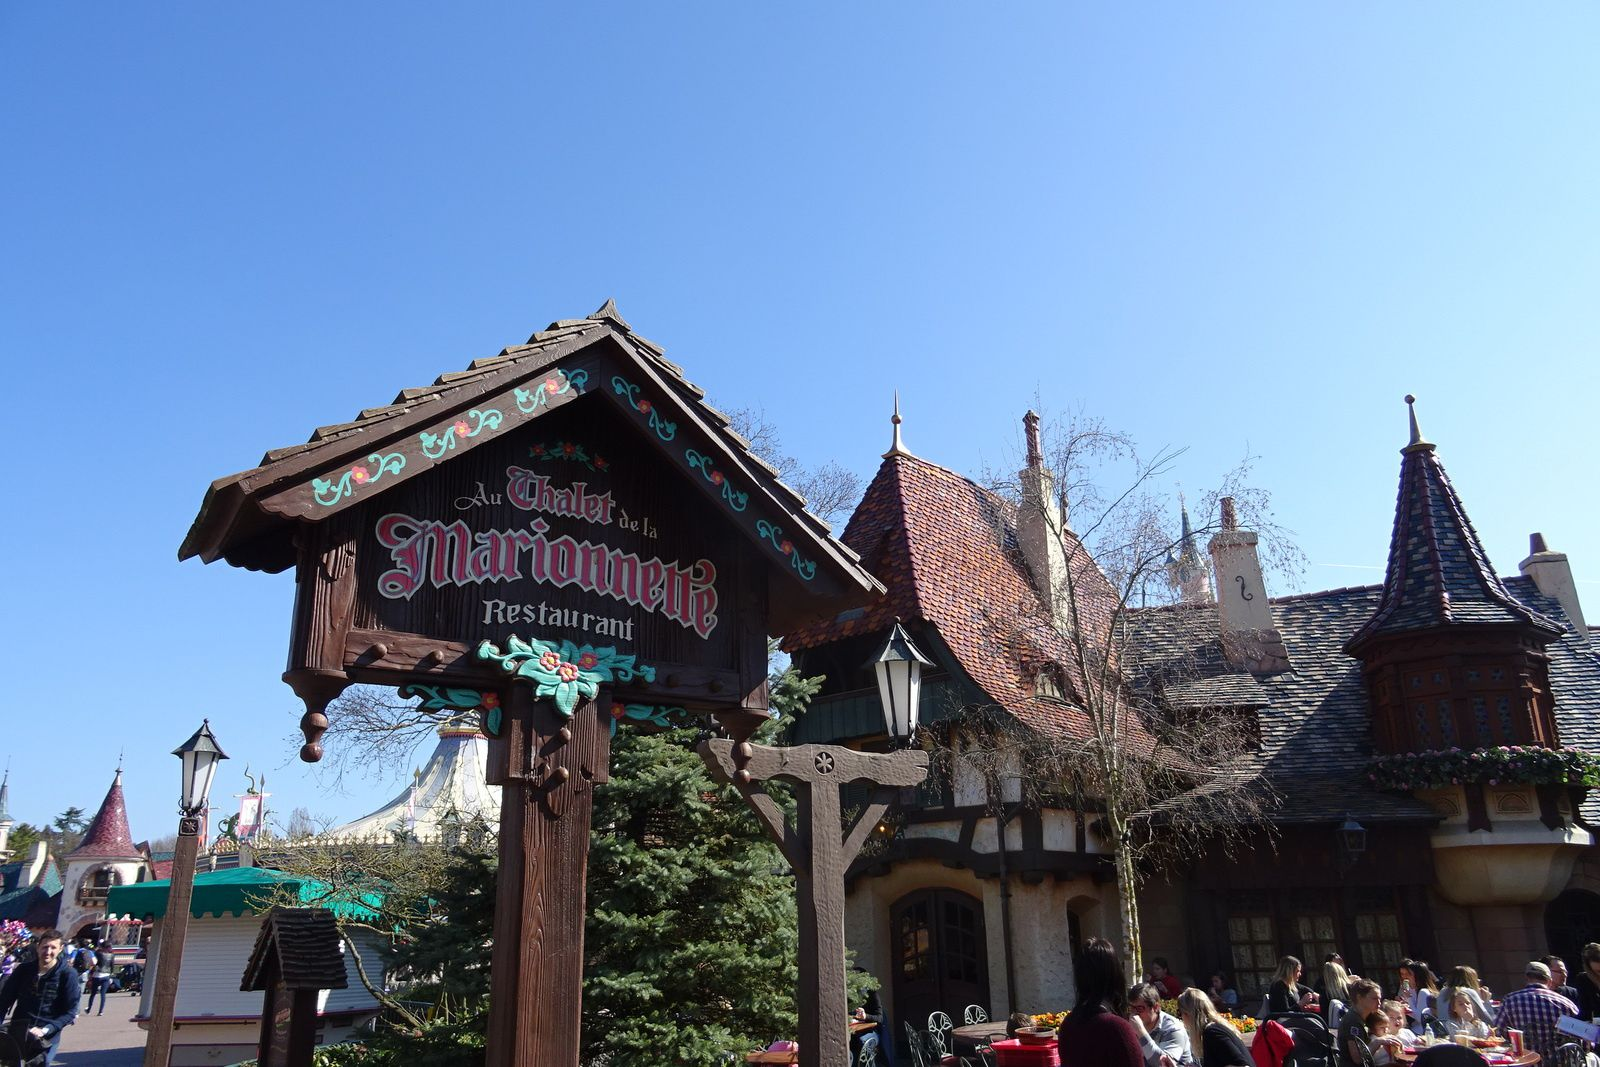 Les restaurants de Fantasyland à Disneyland Paris